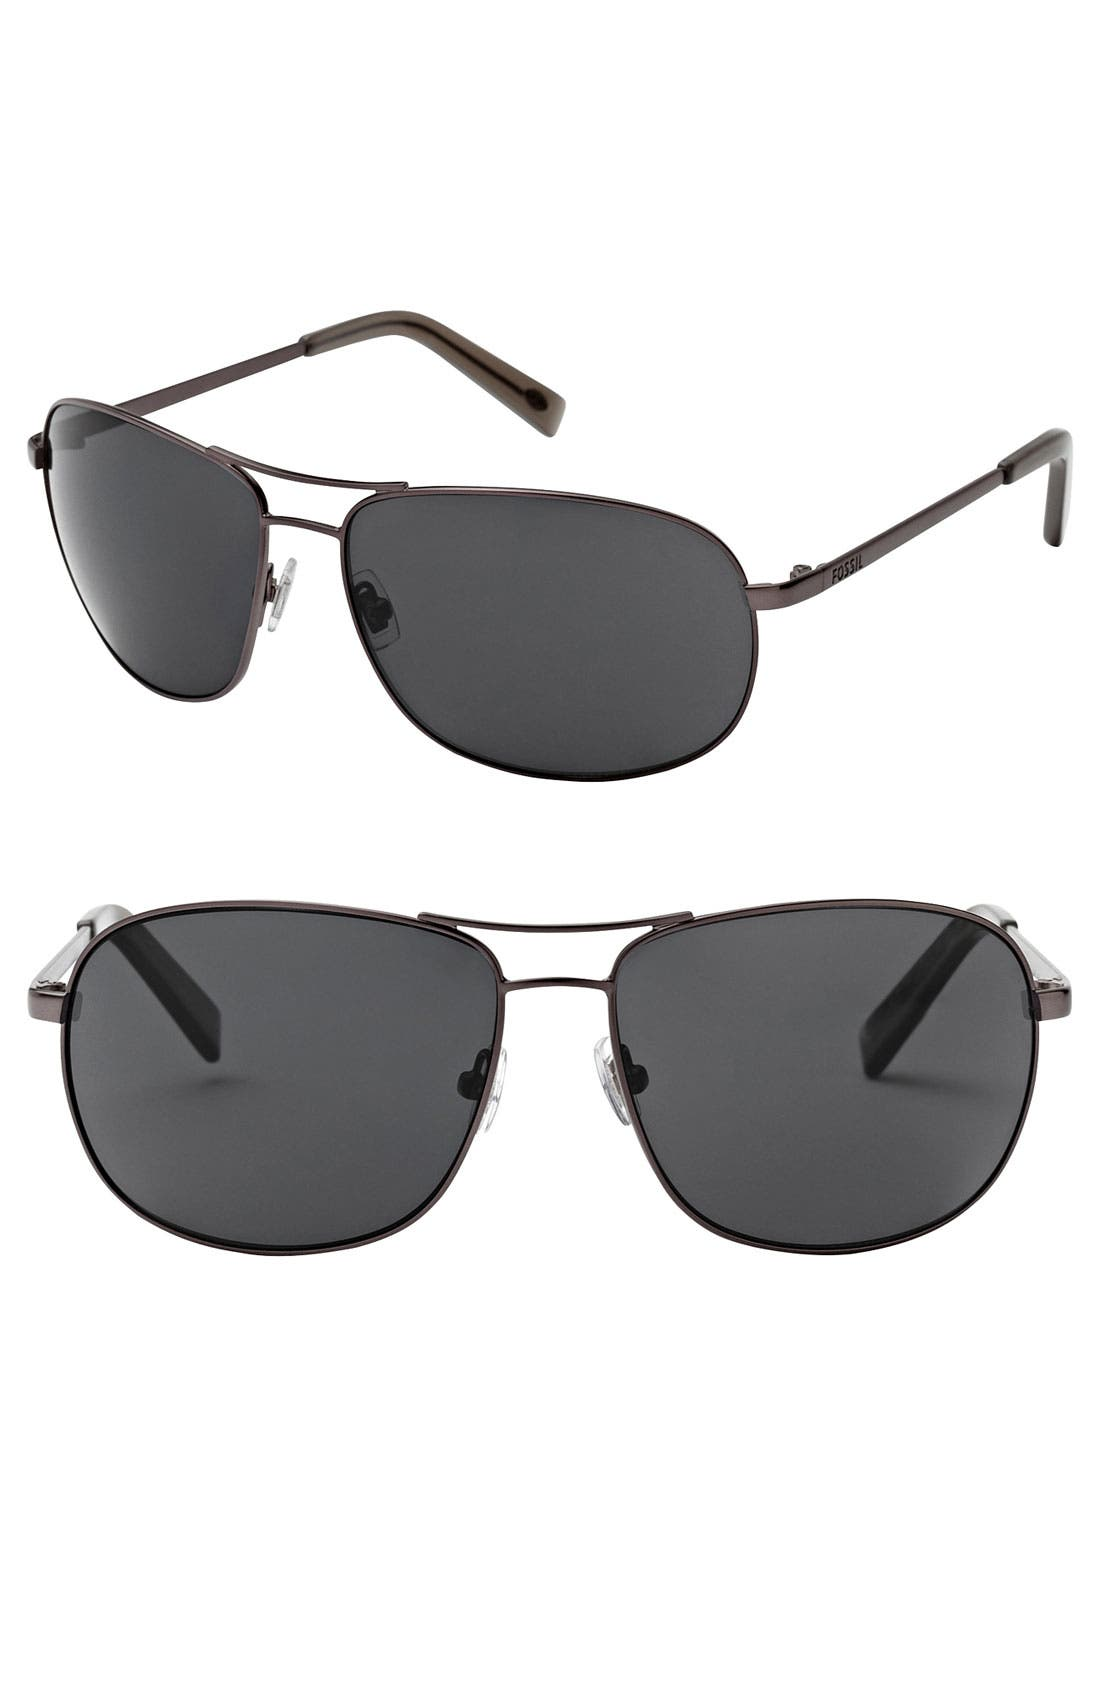 Main Image - Fossil 'Dylan' 62mm Aviator Sunglasses